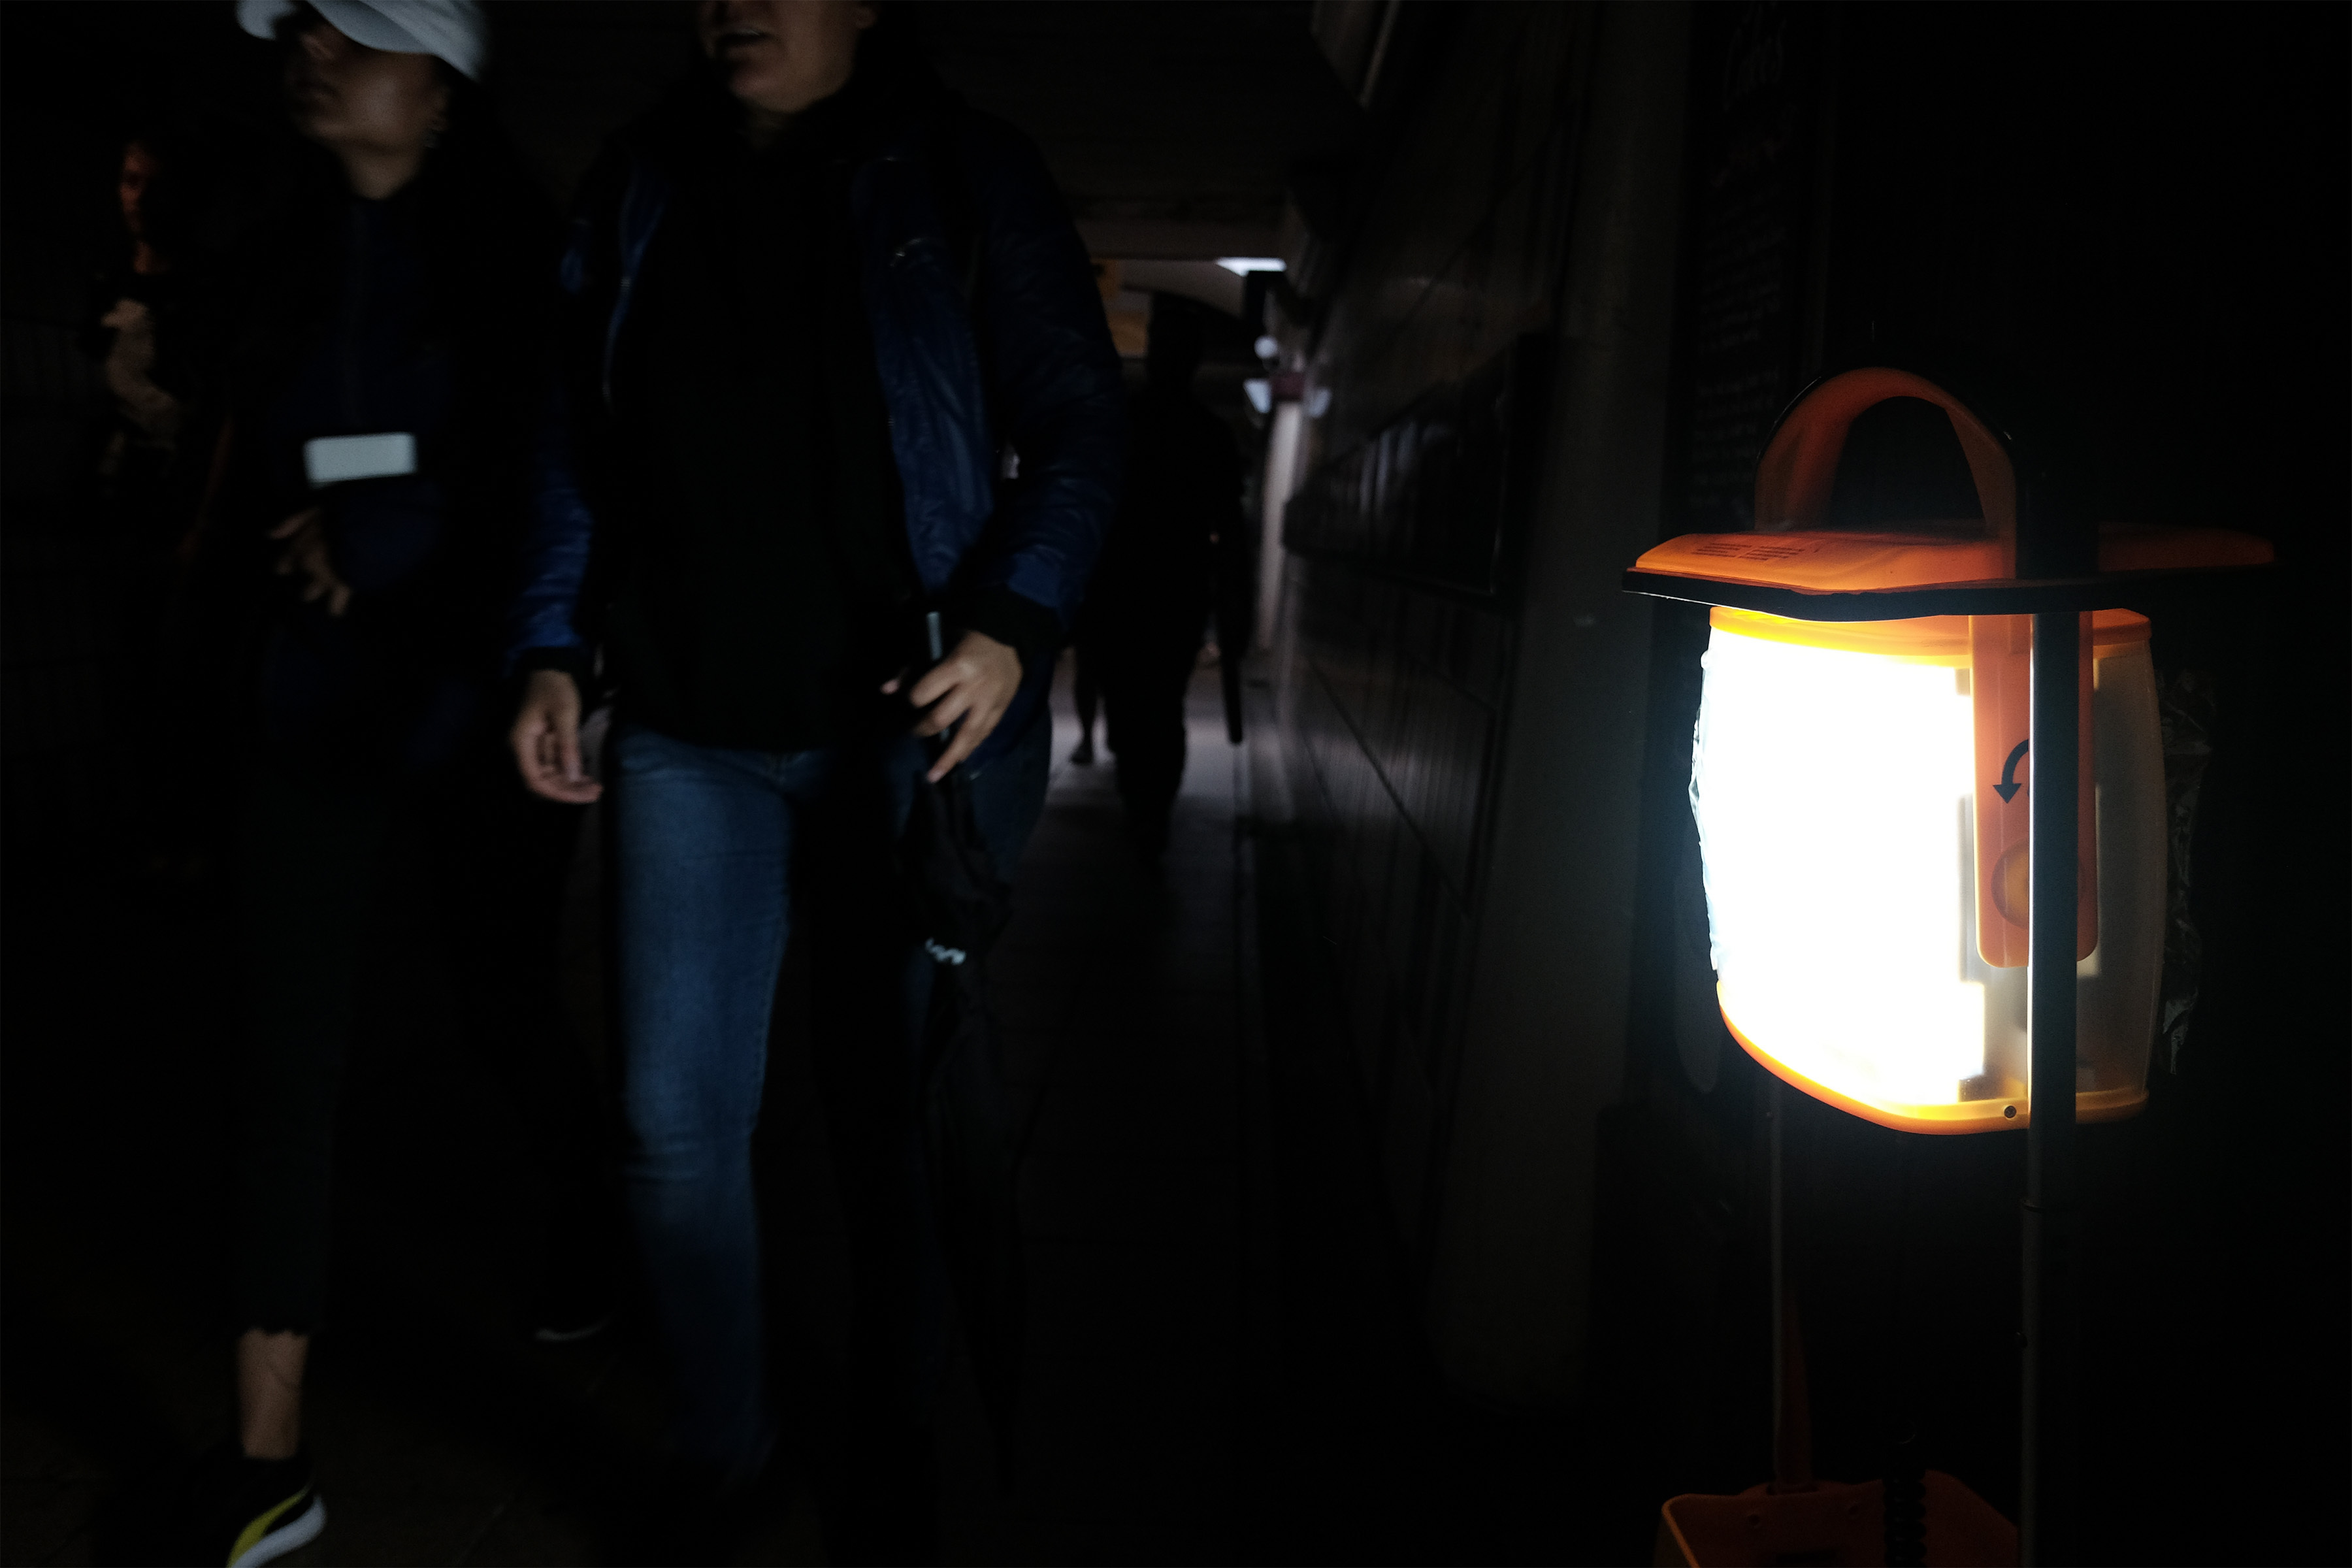 UK-wide power cut: Major outage affected trains, airports and traffic signals